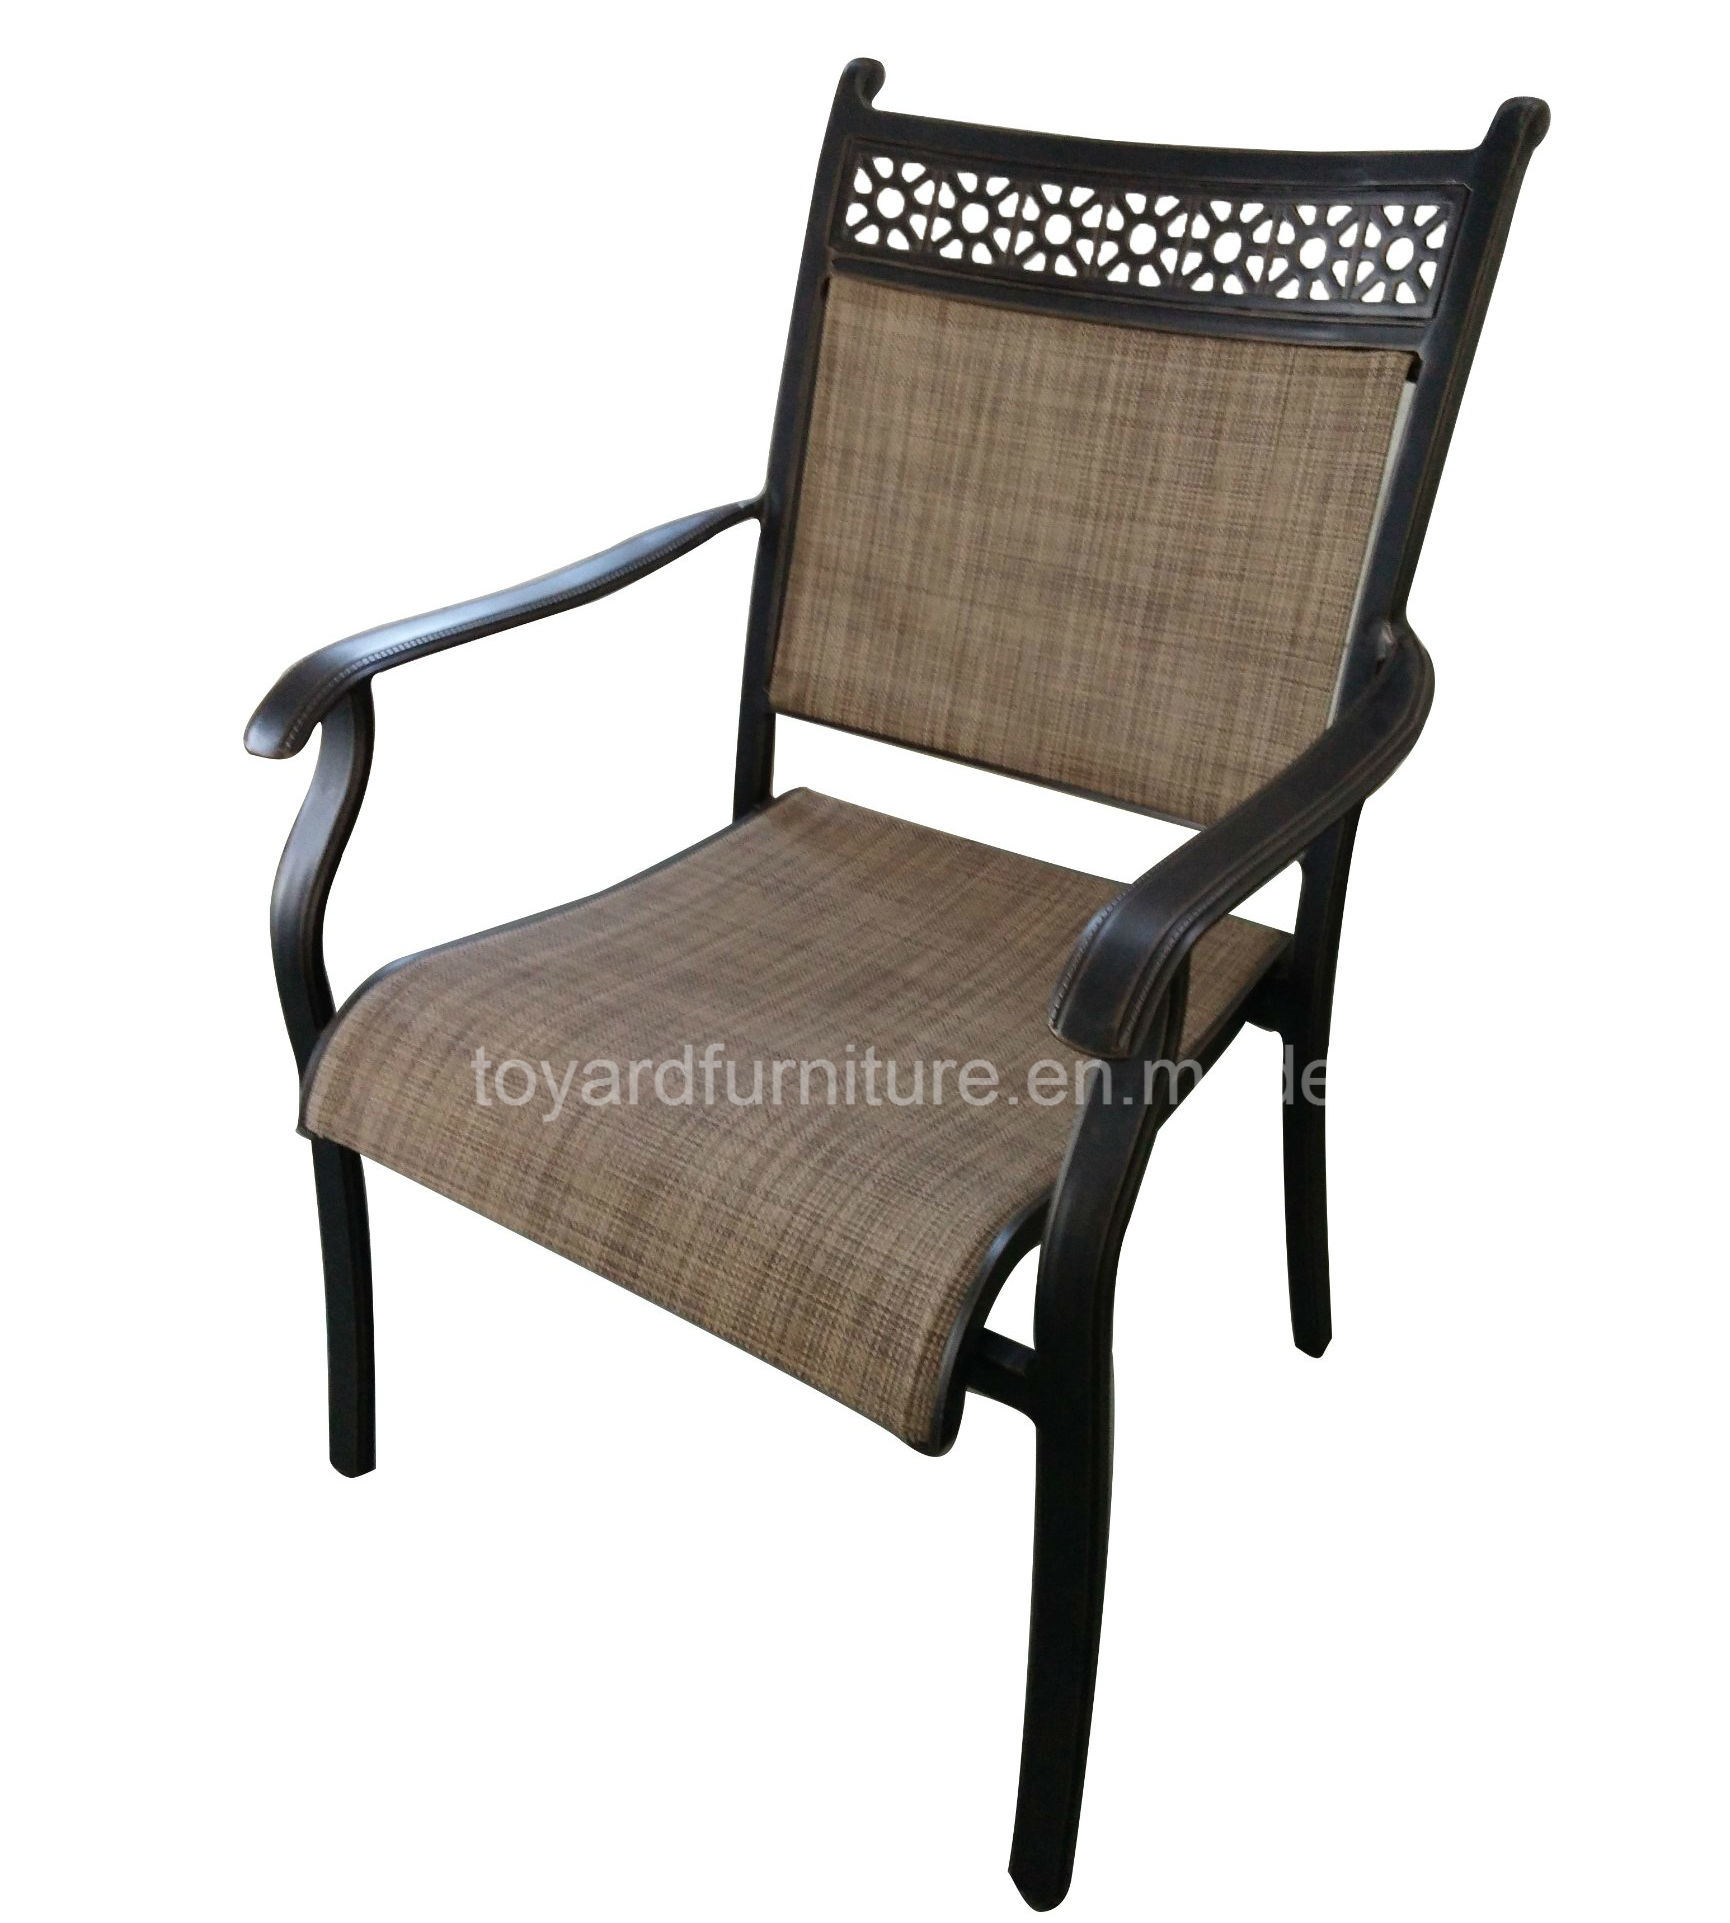 Hot Item Home Indoor Outdoor Sling Mesh Cast Aluminum Dining Arm Chair In Antique Bronze Finish